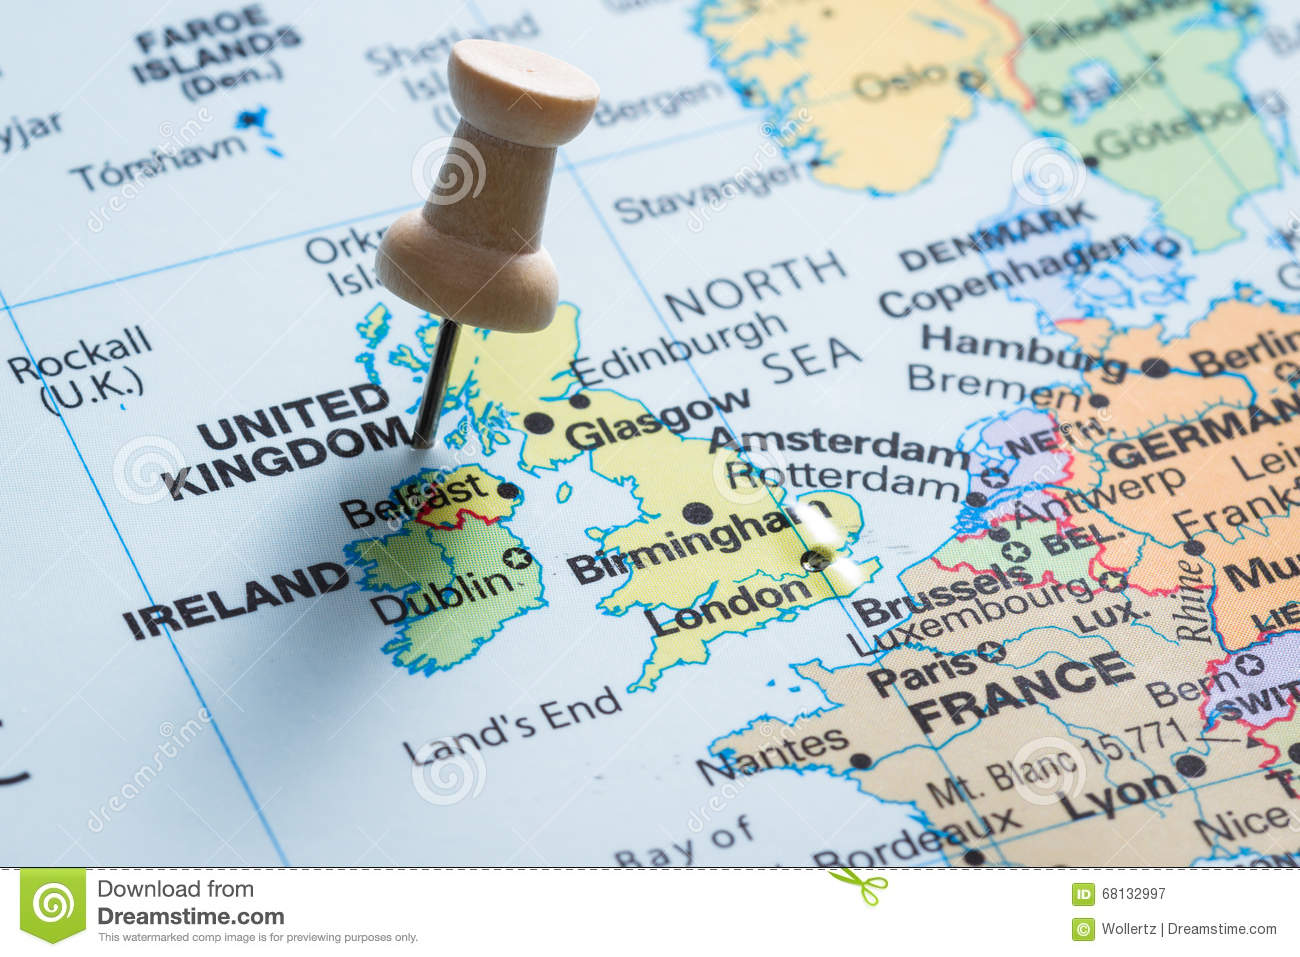 United Kingdom on a map stock image. Image of places - 68132997 on world map of maldive islands, world map of the sun, world map of amazon basin, world map of ottoman empire, world map of portugal, world map of west, world map of crusades, world map of connecticut, world map of us virgin islands, world map of diego garcia, world map of northern africa, world map of sweden, world map of philippines, world map of gallipoli, world map of sub saharan africa, world map of kenya, world map of british territory, world map of liberia, world map of perth, world map of europe,